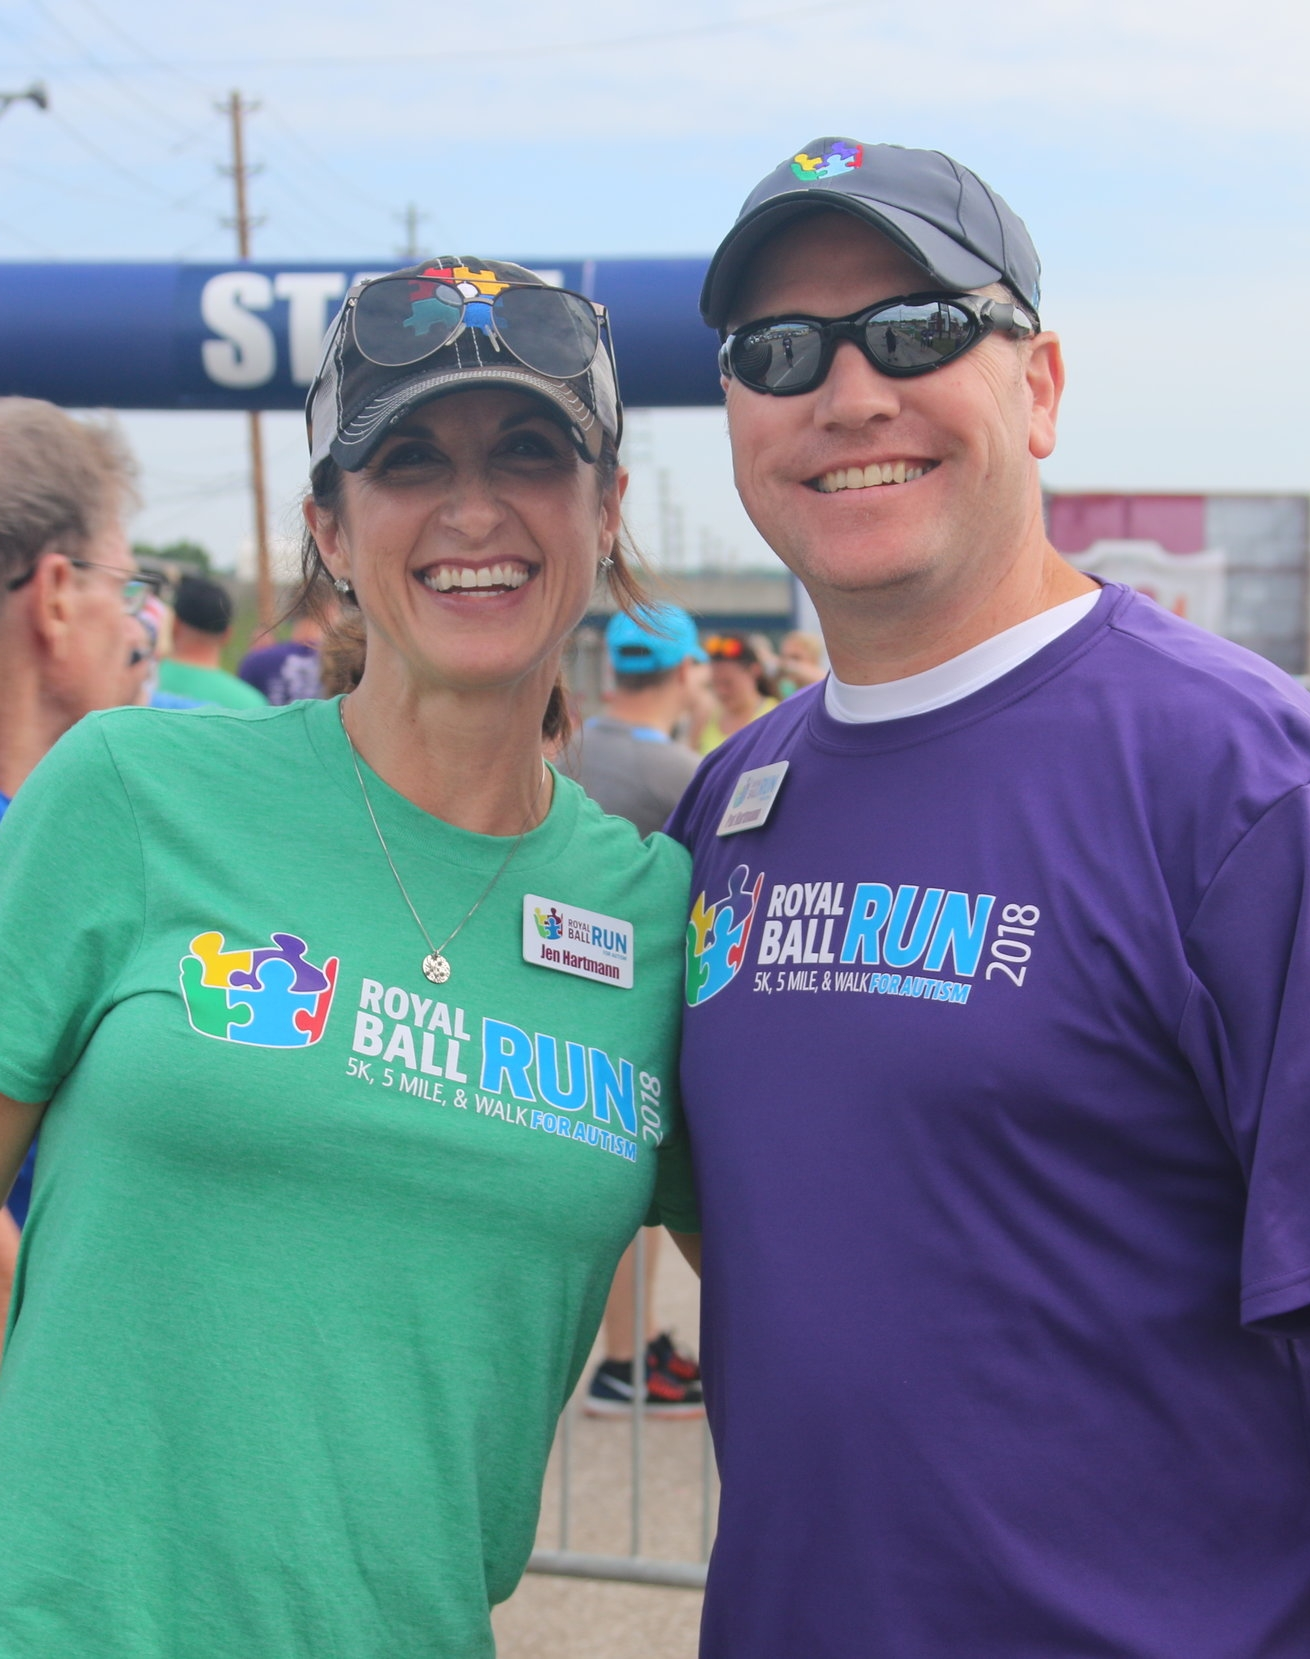 Our Story - The inspiration for the Royal Ball Run for Autism organization stems from the now 1 in 59 children who are diagnosed with autism each year. We will be running to celebrate their achievements, their courage, and their future.Learn More